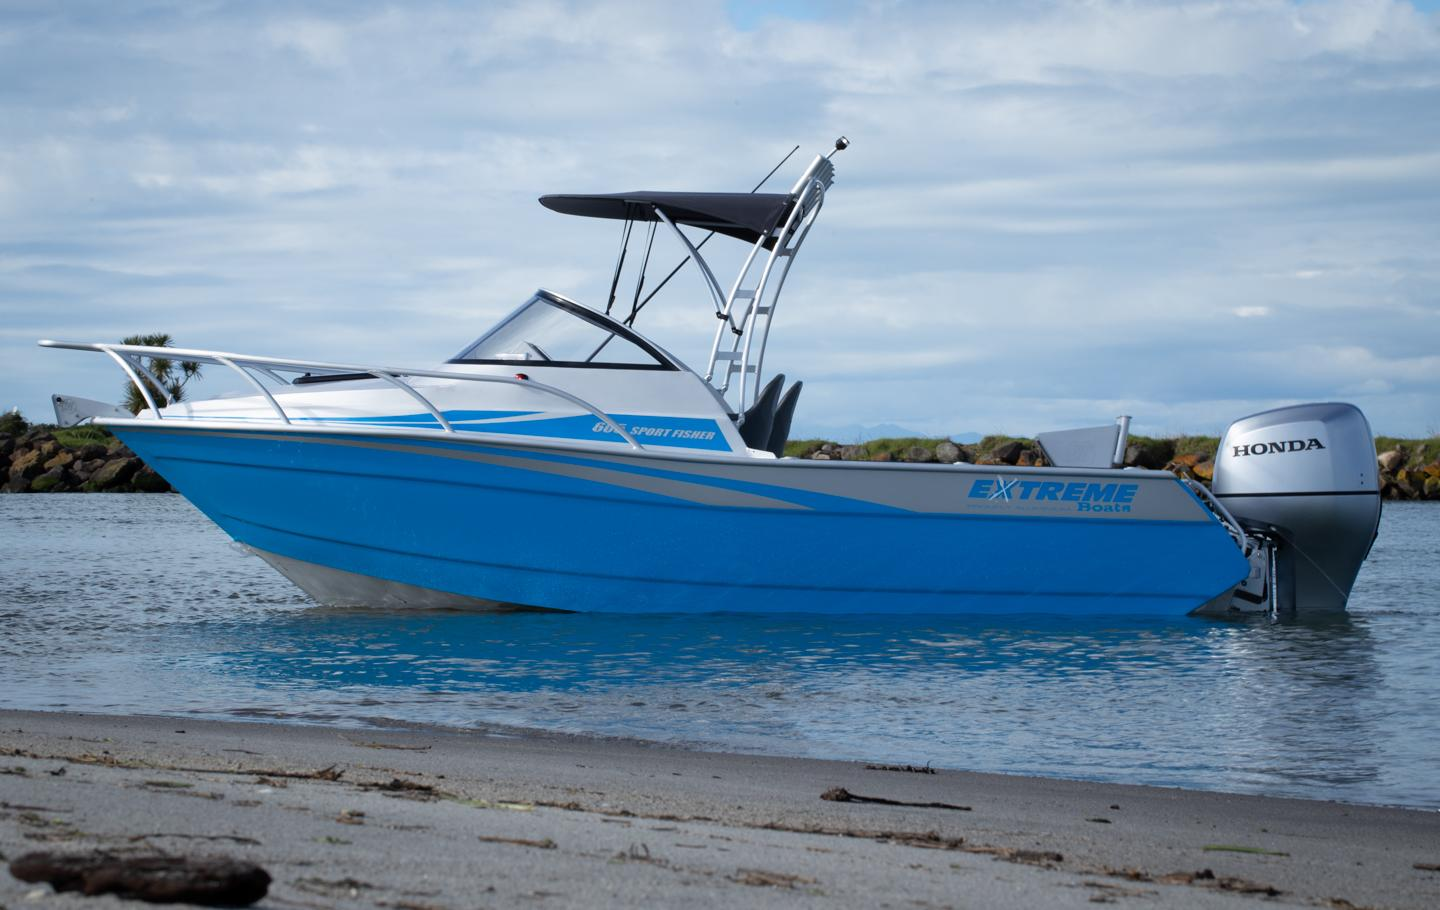 Extreme Boats 605 Sportfisher available from Hastings Marine, Port Macquarie